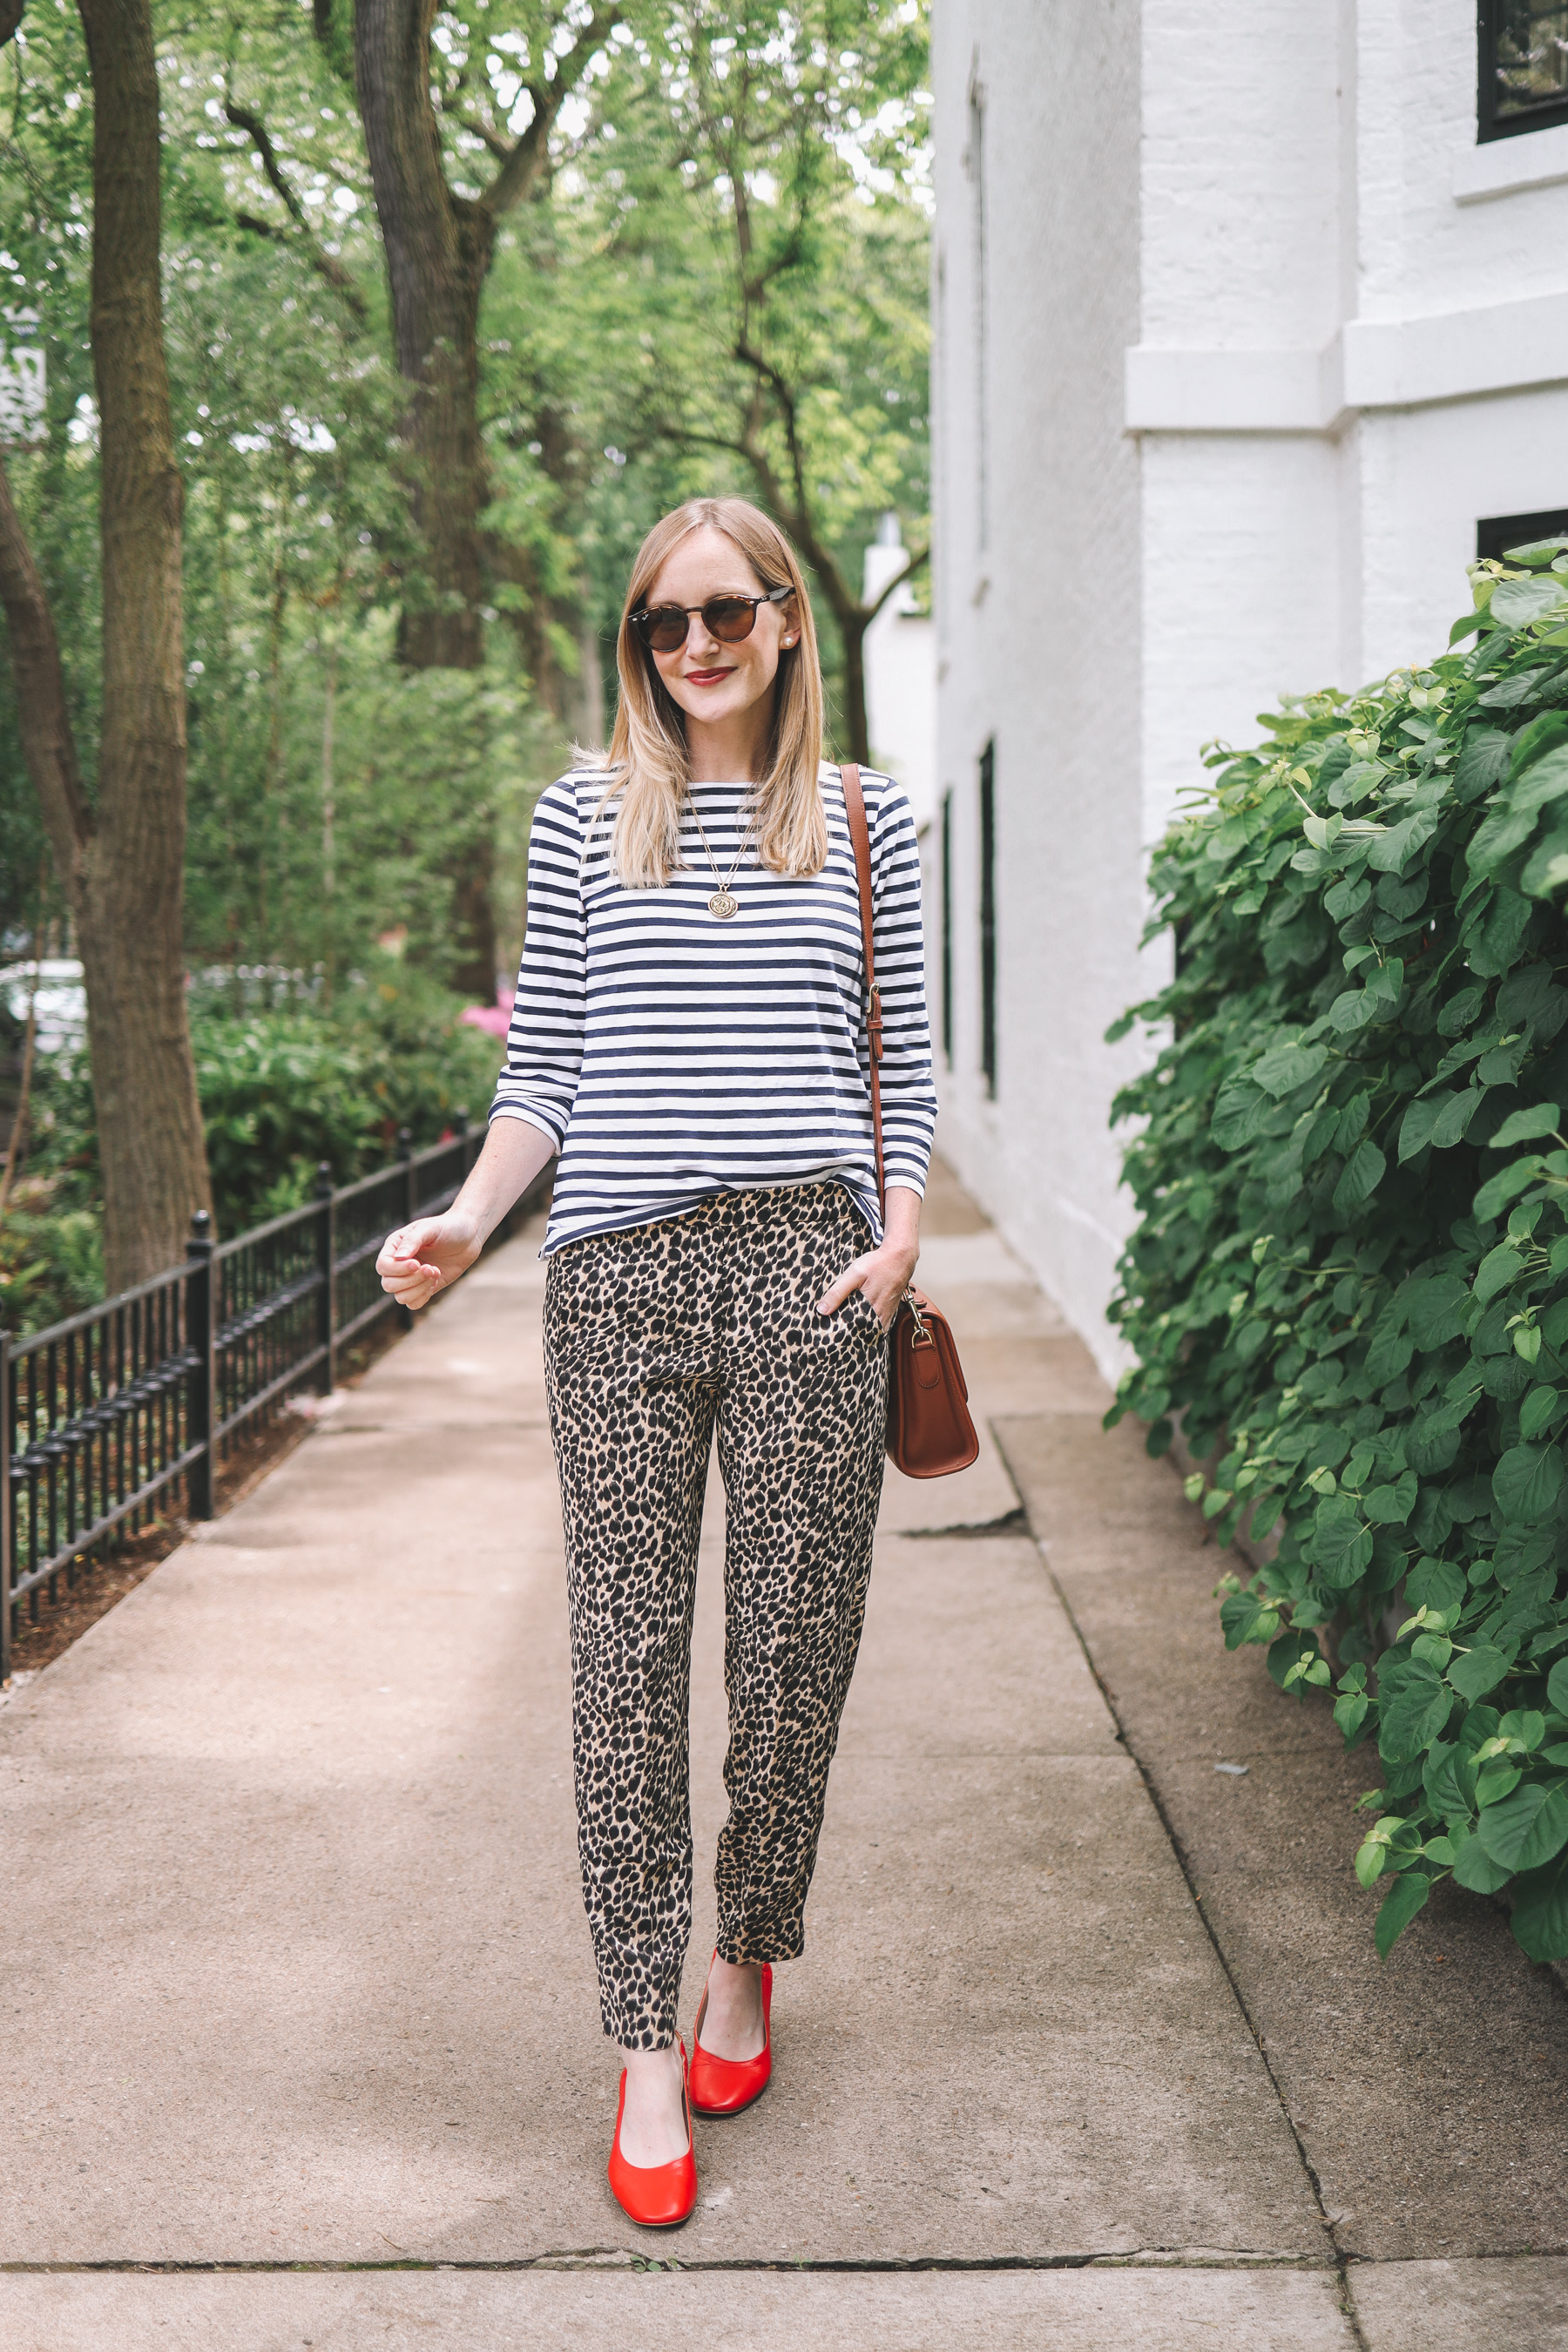 Kelly Larkin's outfit details: J.Crew Factory Pull-On Leopard Jamie Pants / Everlane Day Heels / J.Crew Striped Tee / Crossbody / Maxi-Cosi Carrier